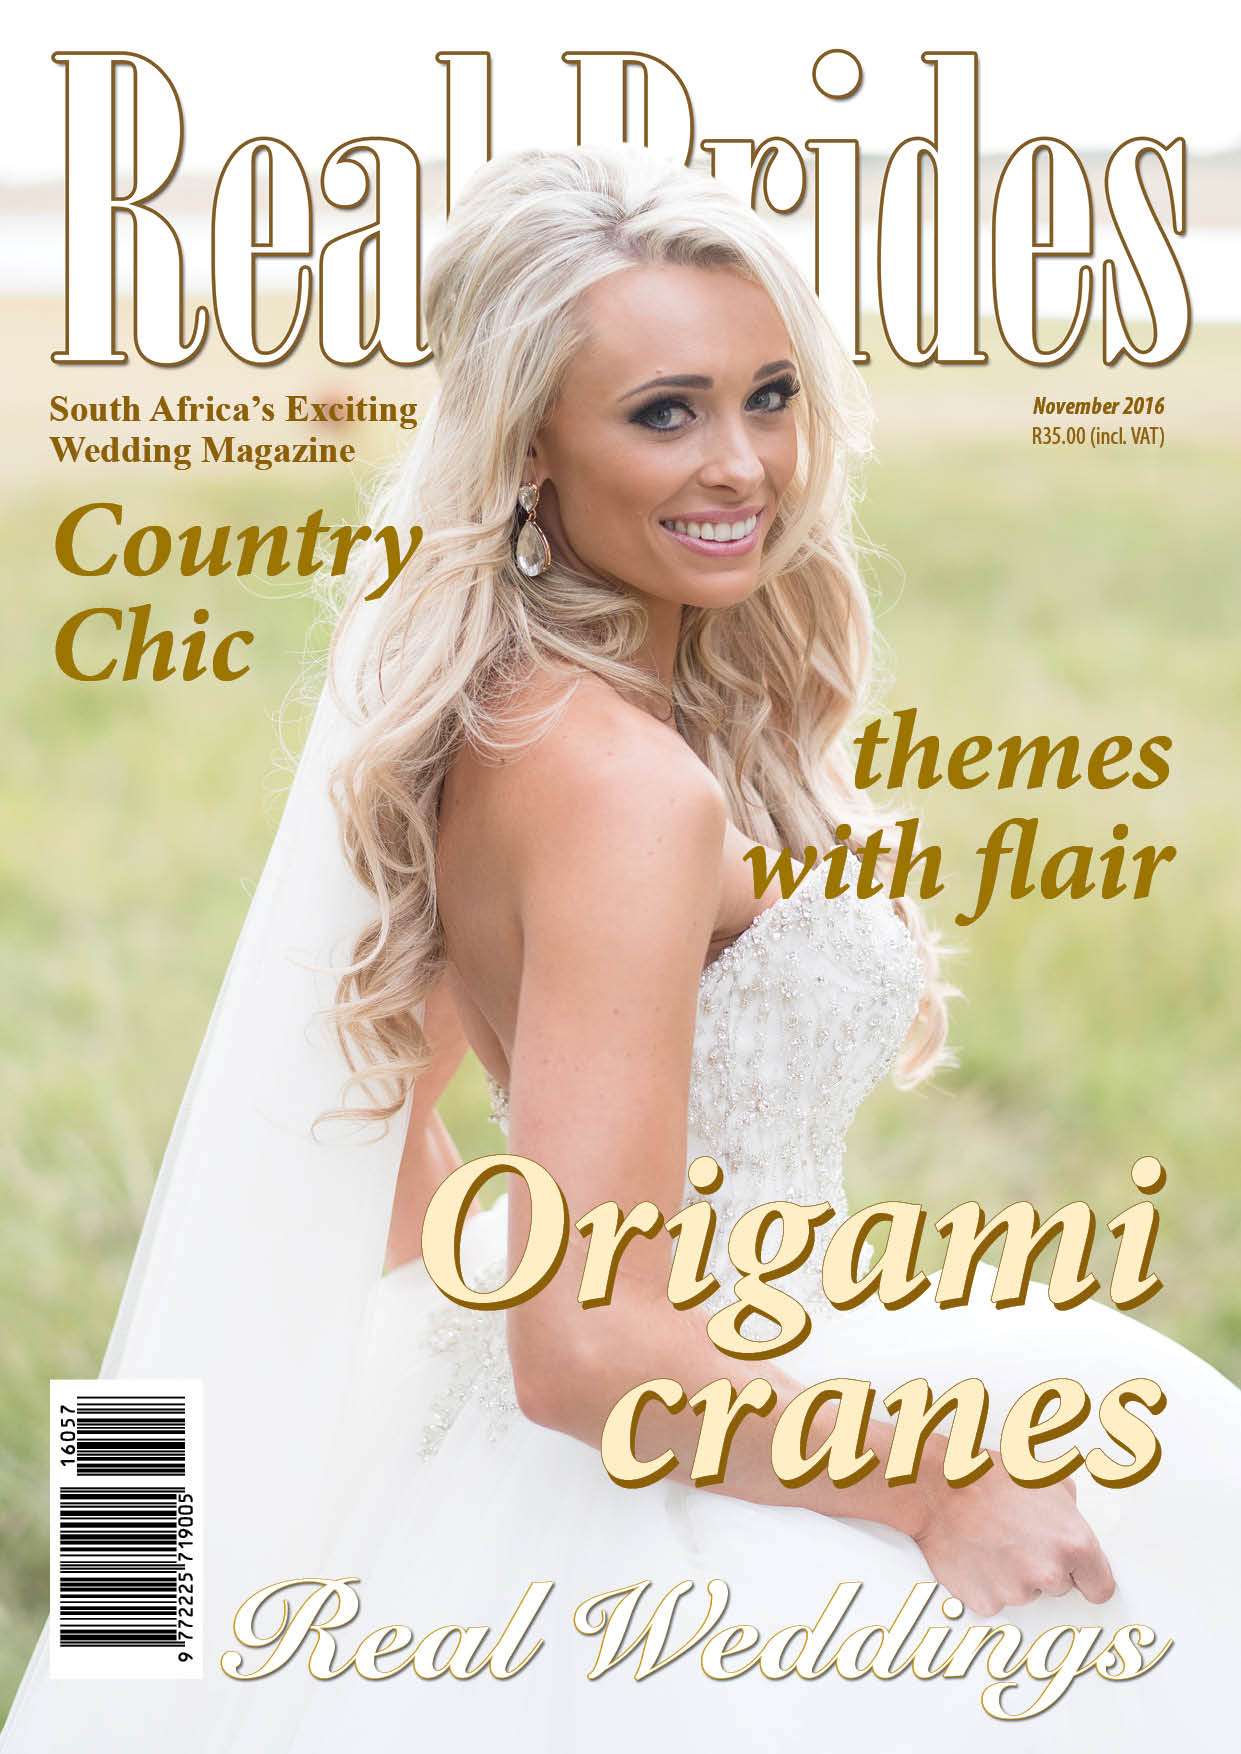 REAL BRIDES MAGAZINE – NOVEMBER 2016